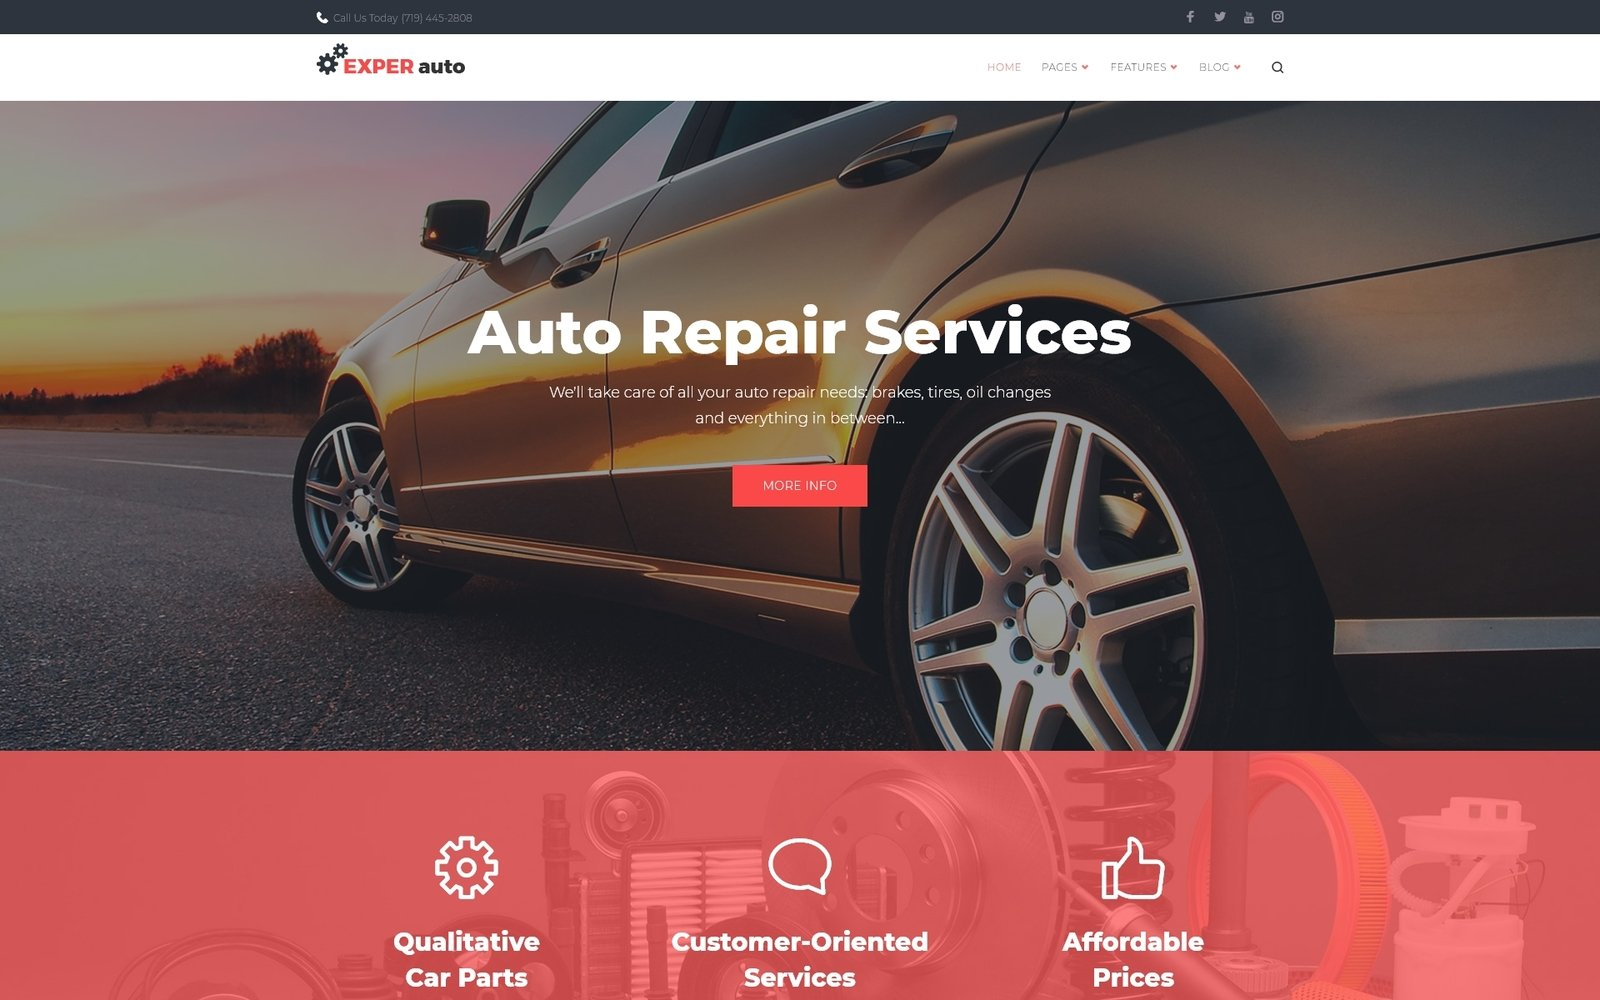 EXPER Auto - Auto Repair Services Fully Responsive WordPress Theme WordPress Theme - screenshot